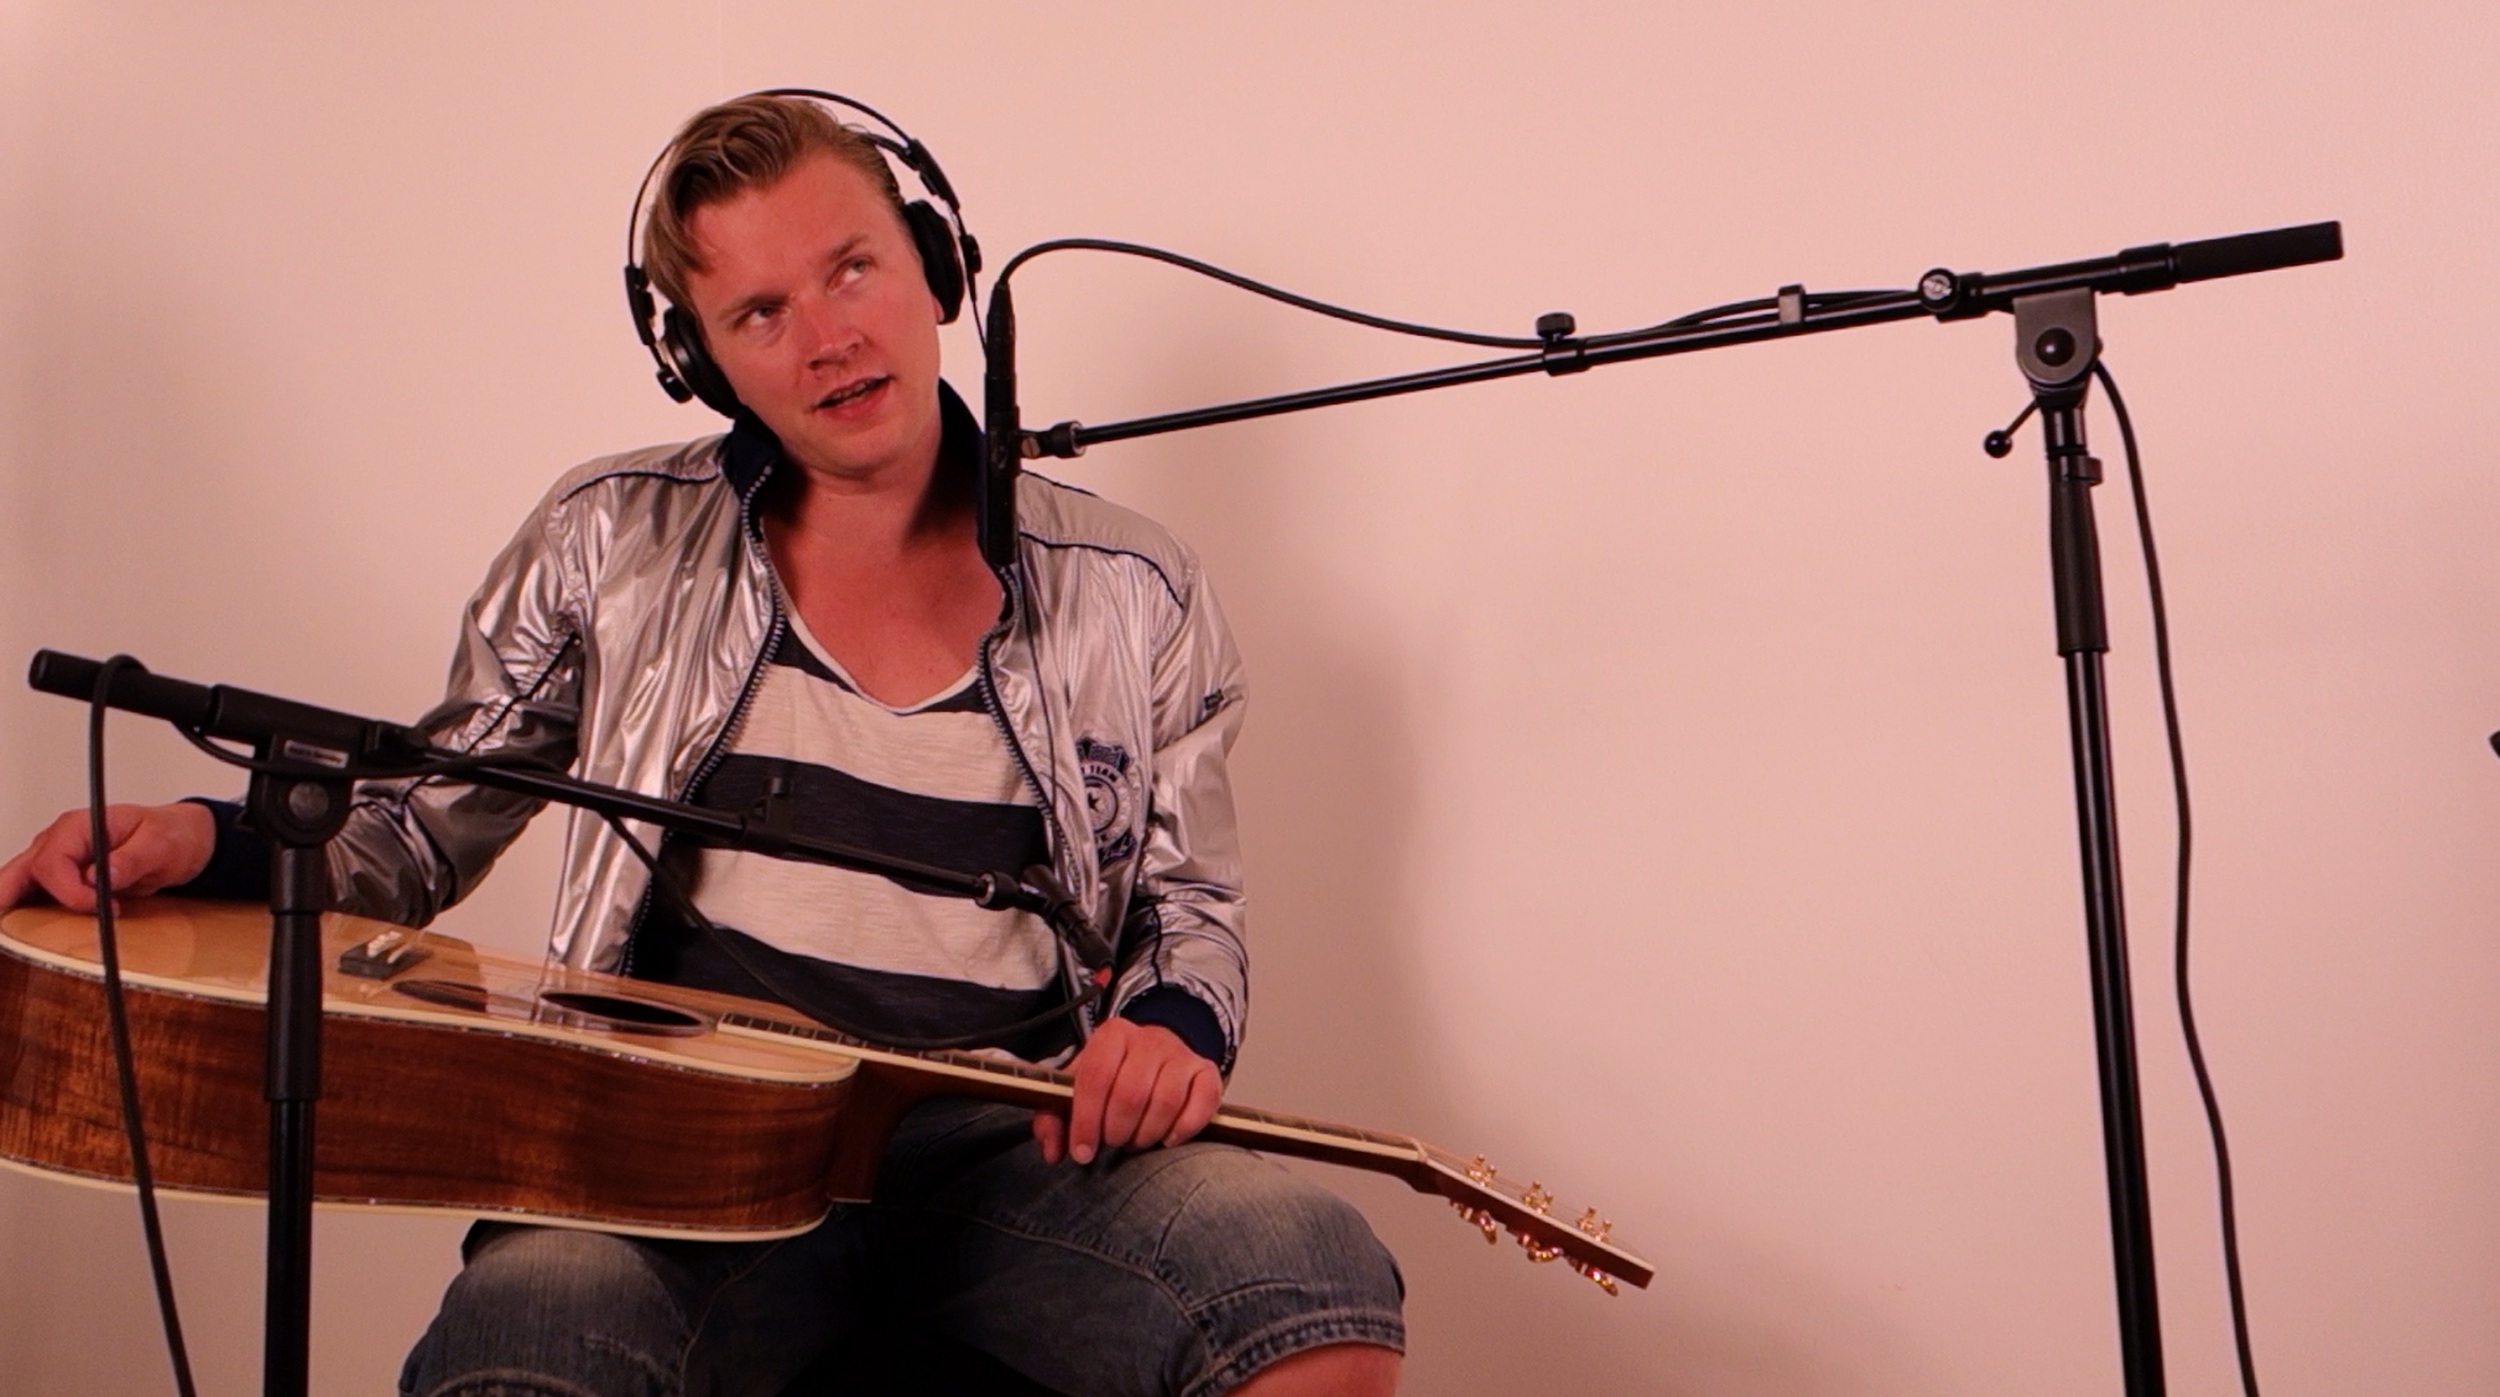 Stills from an upcoming video: at my studio FutureRevisited